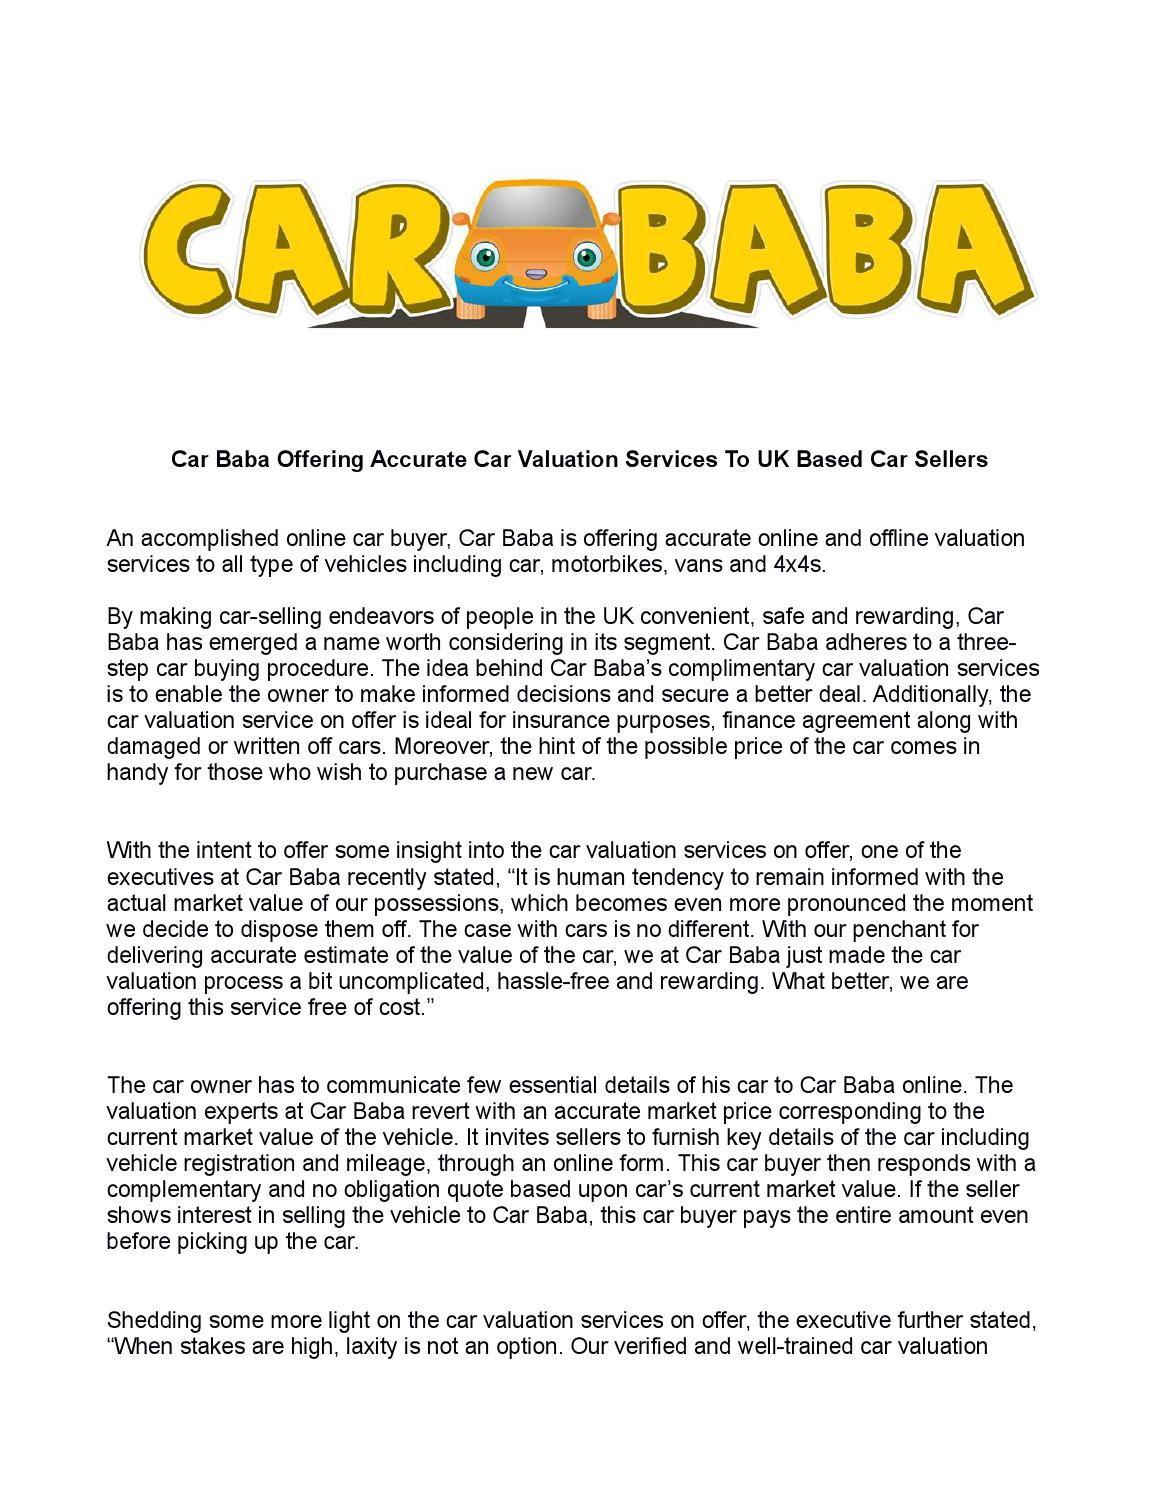 Car Baba Offering Accurate Car Valuation Services To Uk Based Car